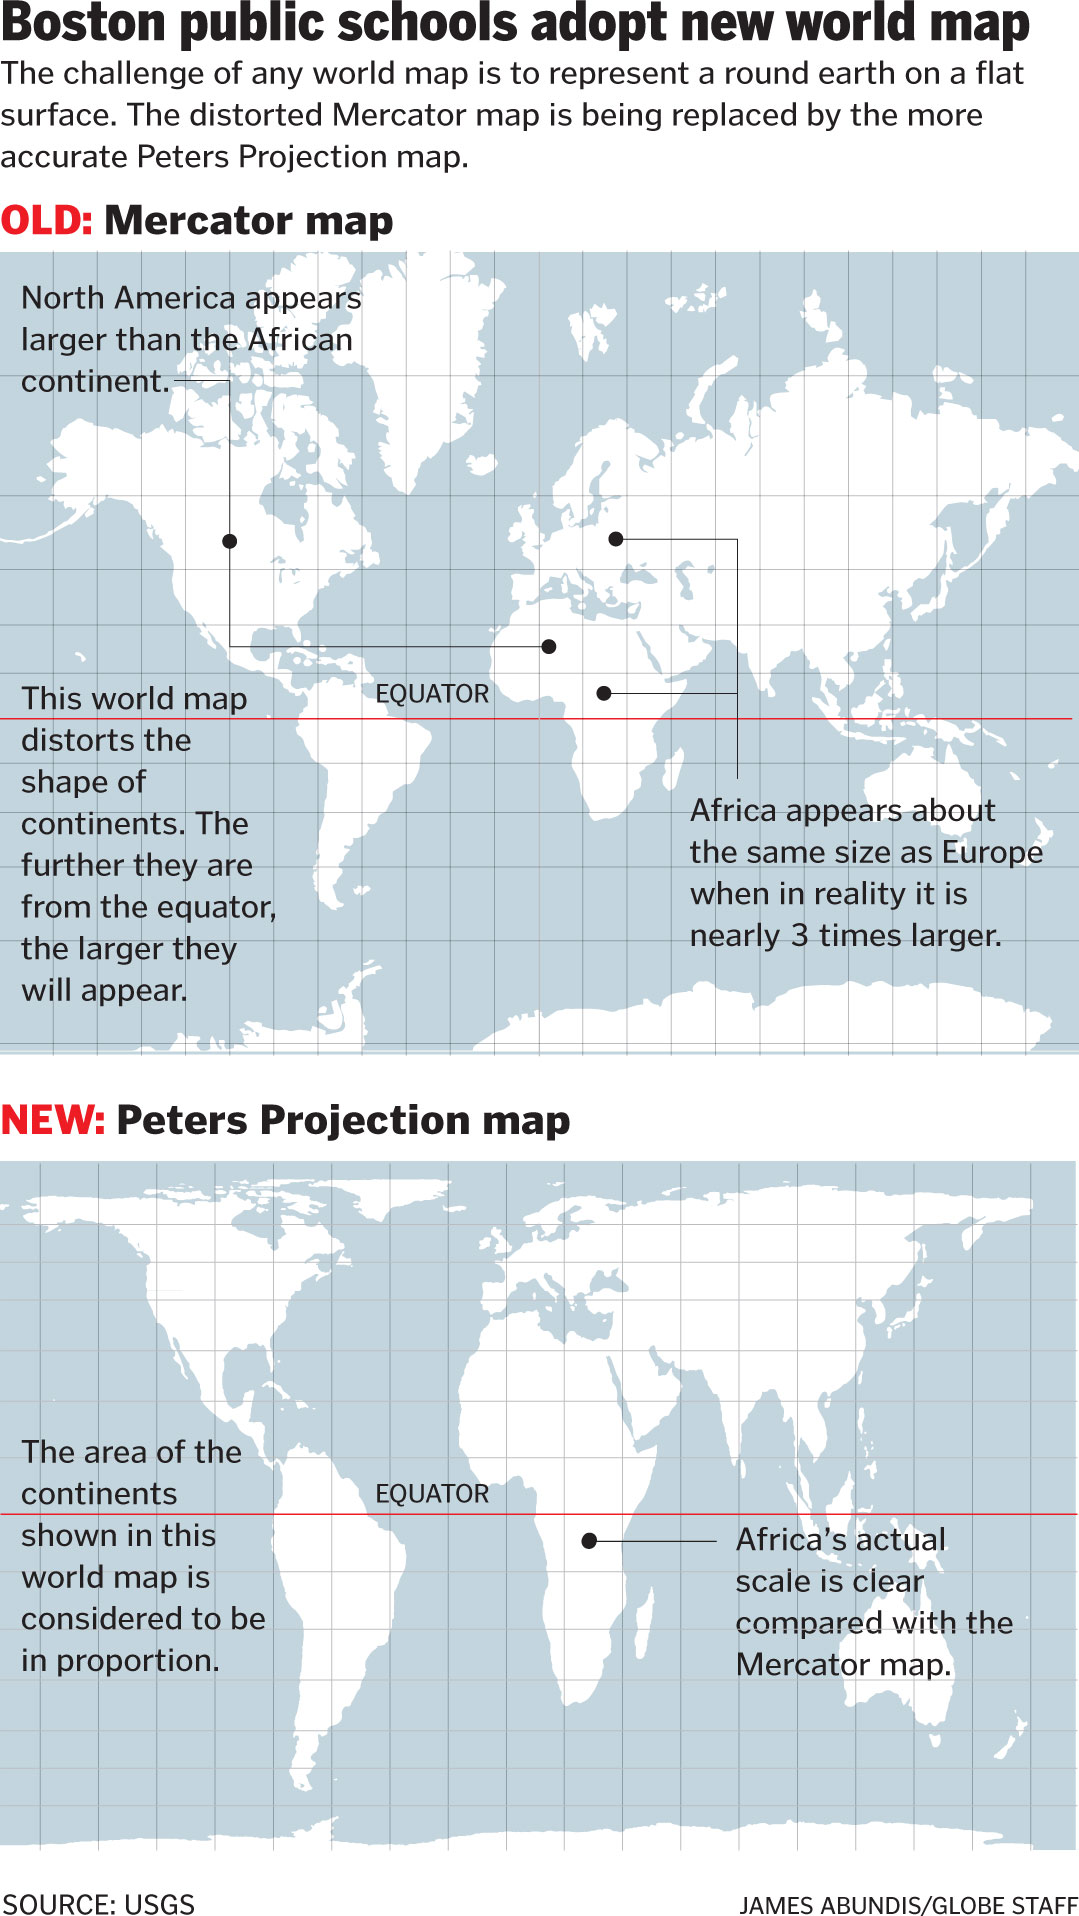 Boston s ditch conventional world maps in favor of ... on peters projection map vs mercator, accurate scale map of globe, flat map and globe, peters projection map with scale, peters map of the world, peters projection of the world,